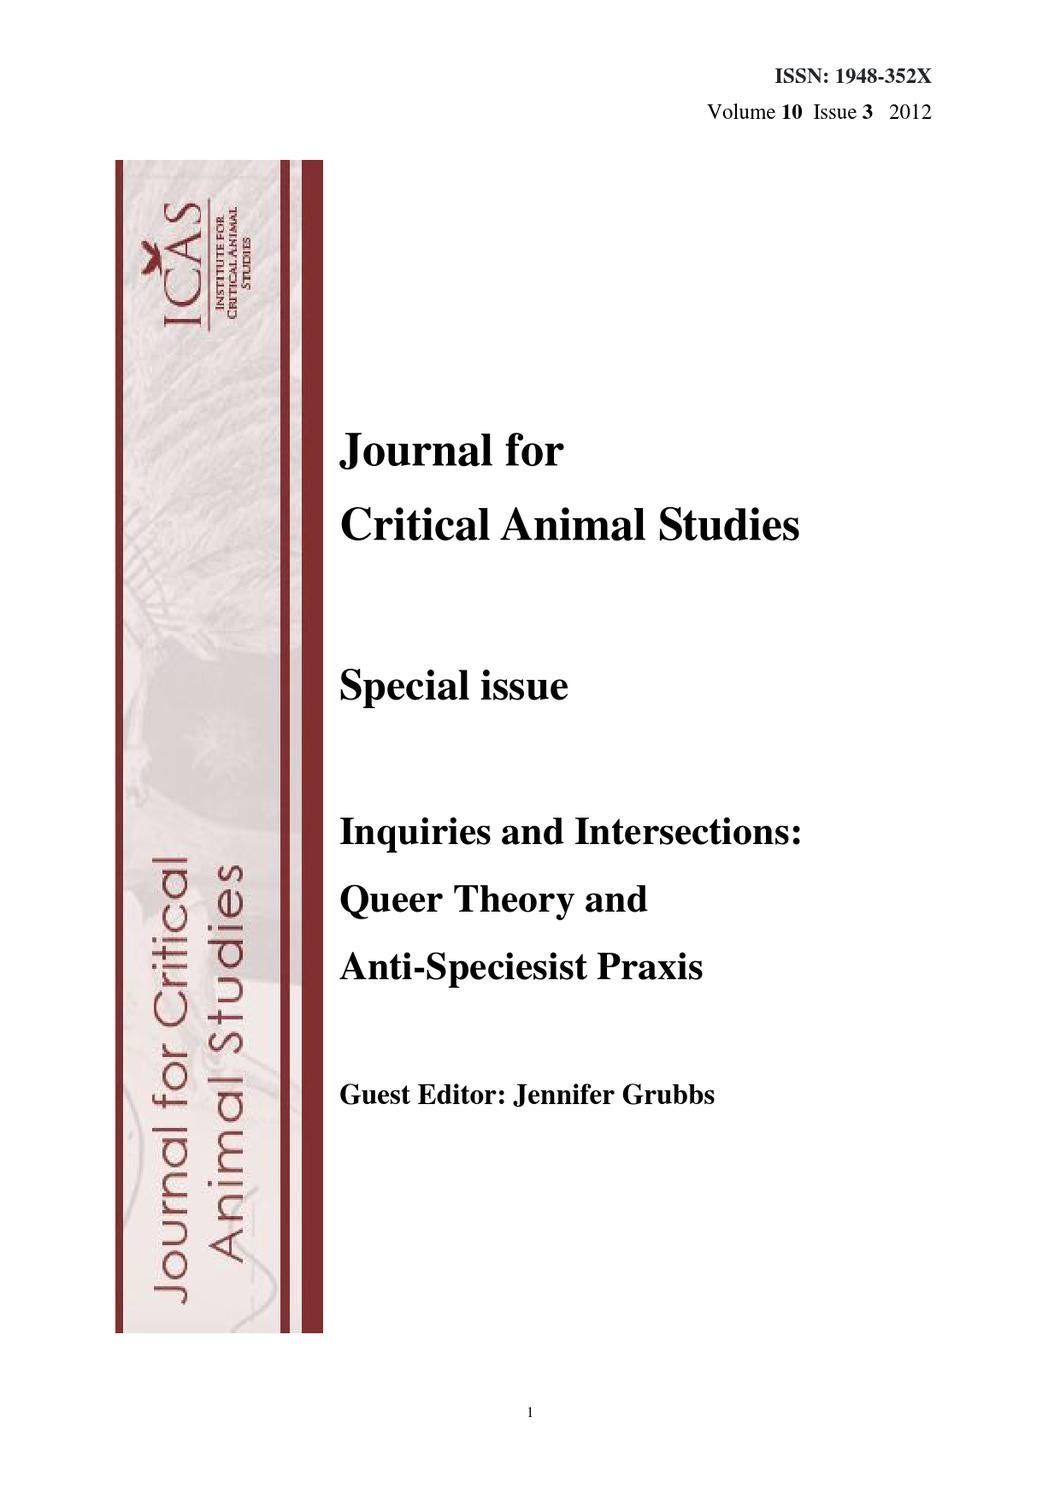 Volume 10 Issue 3 by ICAS Critical Animal Studies - issuu